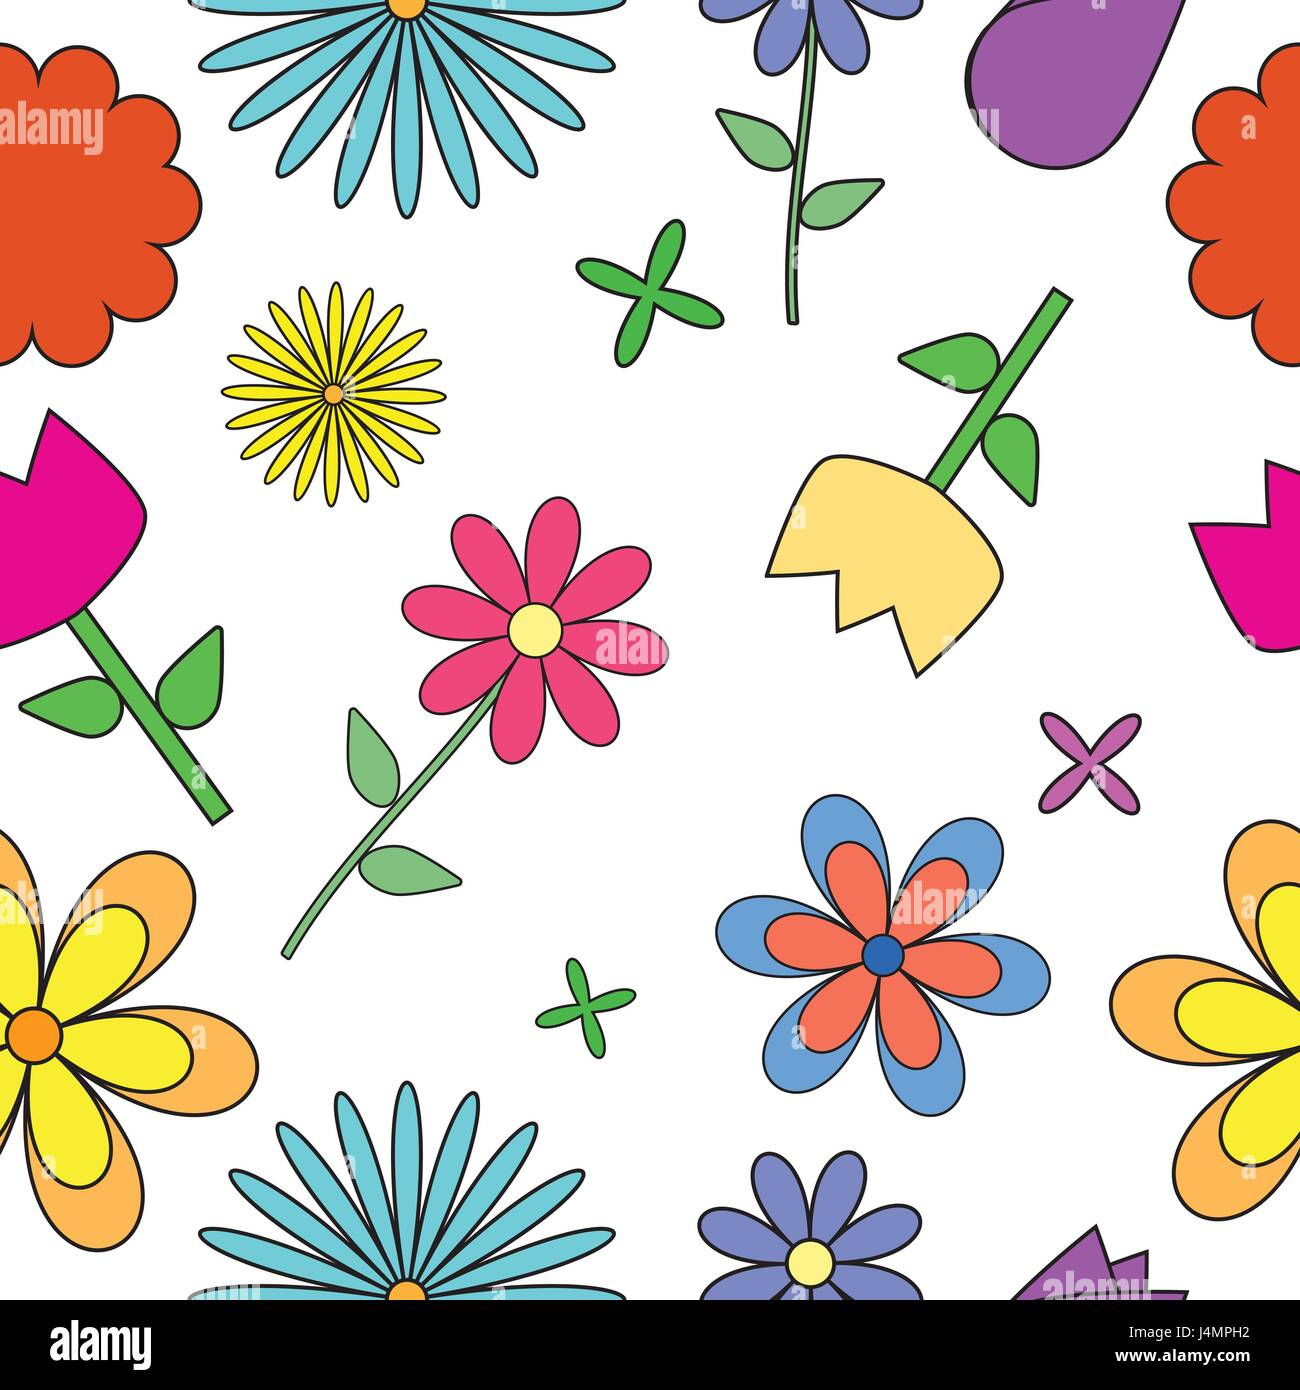 Simple floral pattern - Stock Image